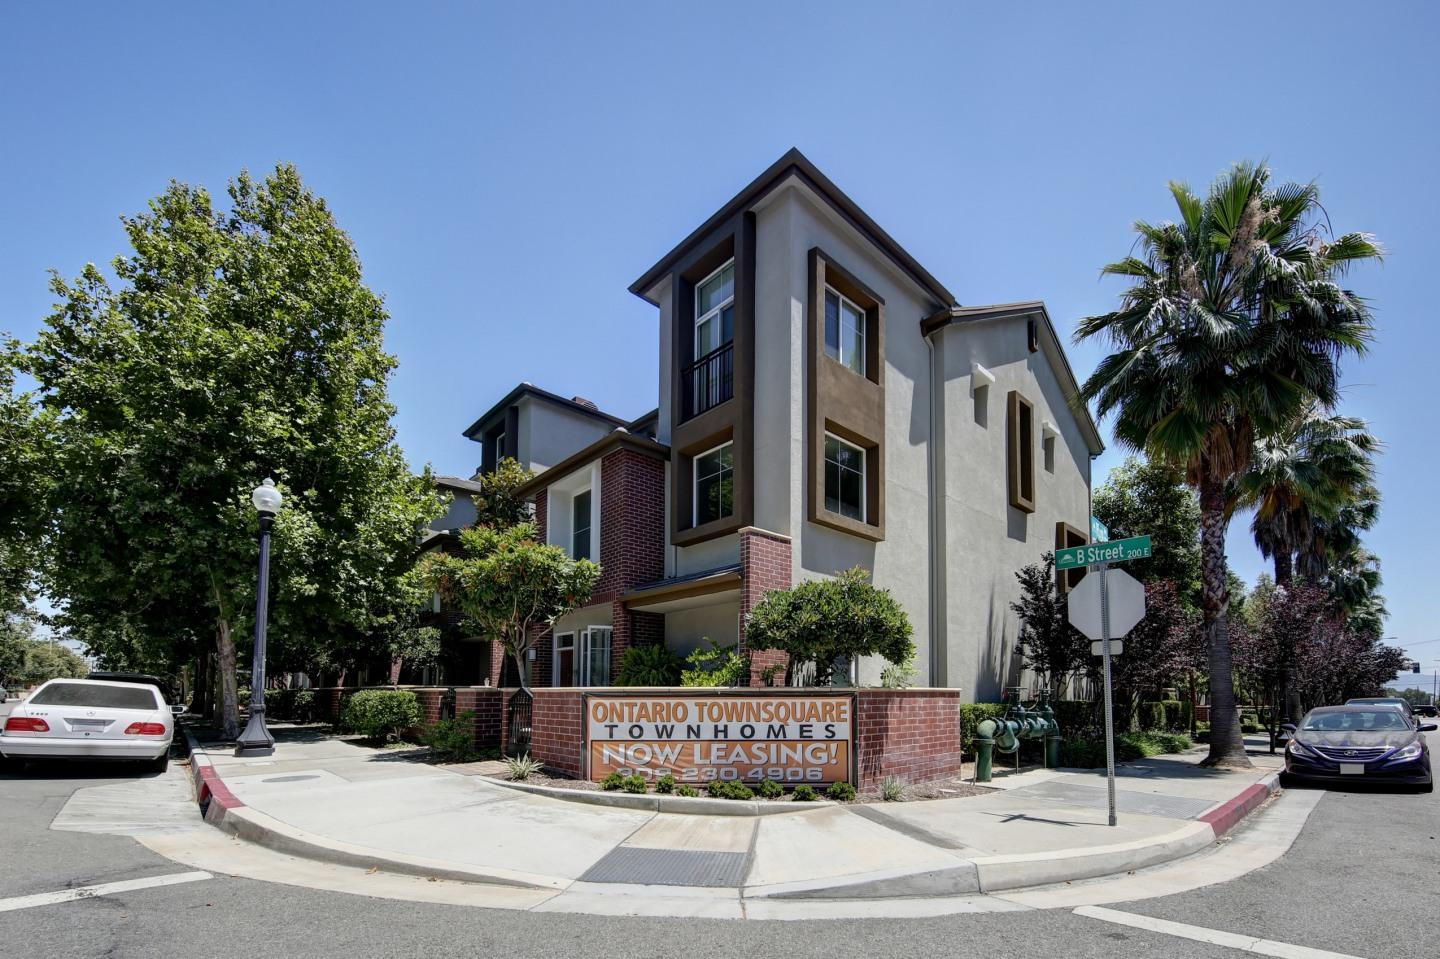 Ontario Town Square Townhomes Apartments photo #1